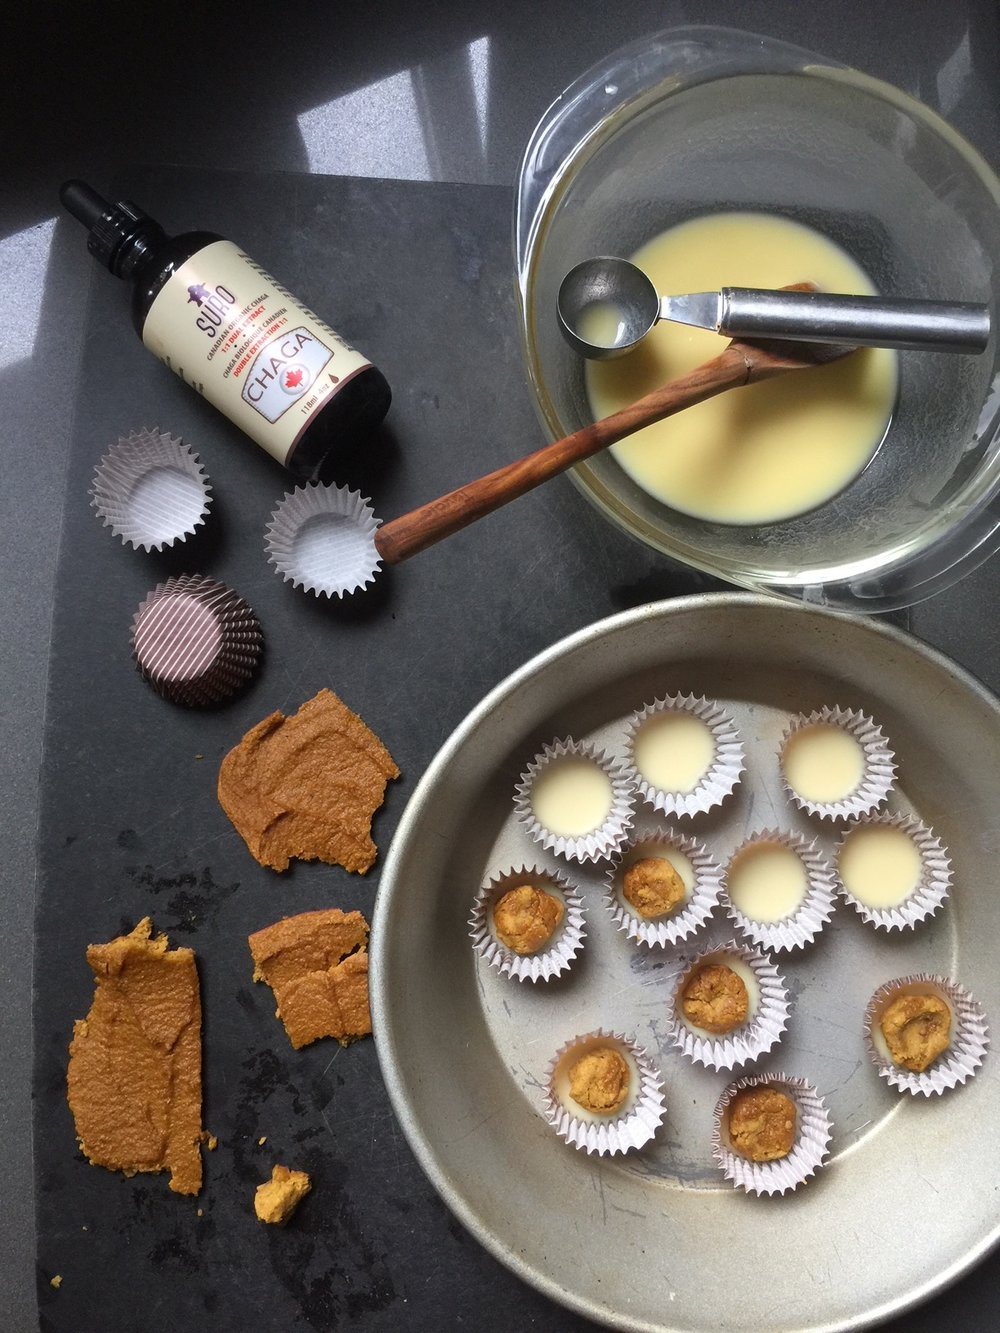 After setting the bottom layer of chocolate, place pumpkin pie filling in each cup.